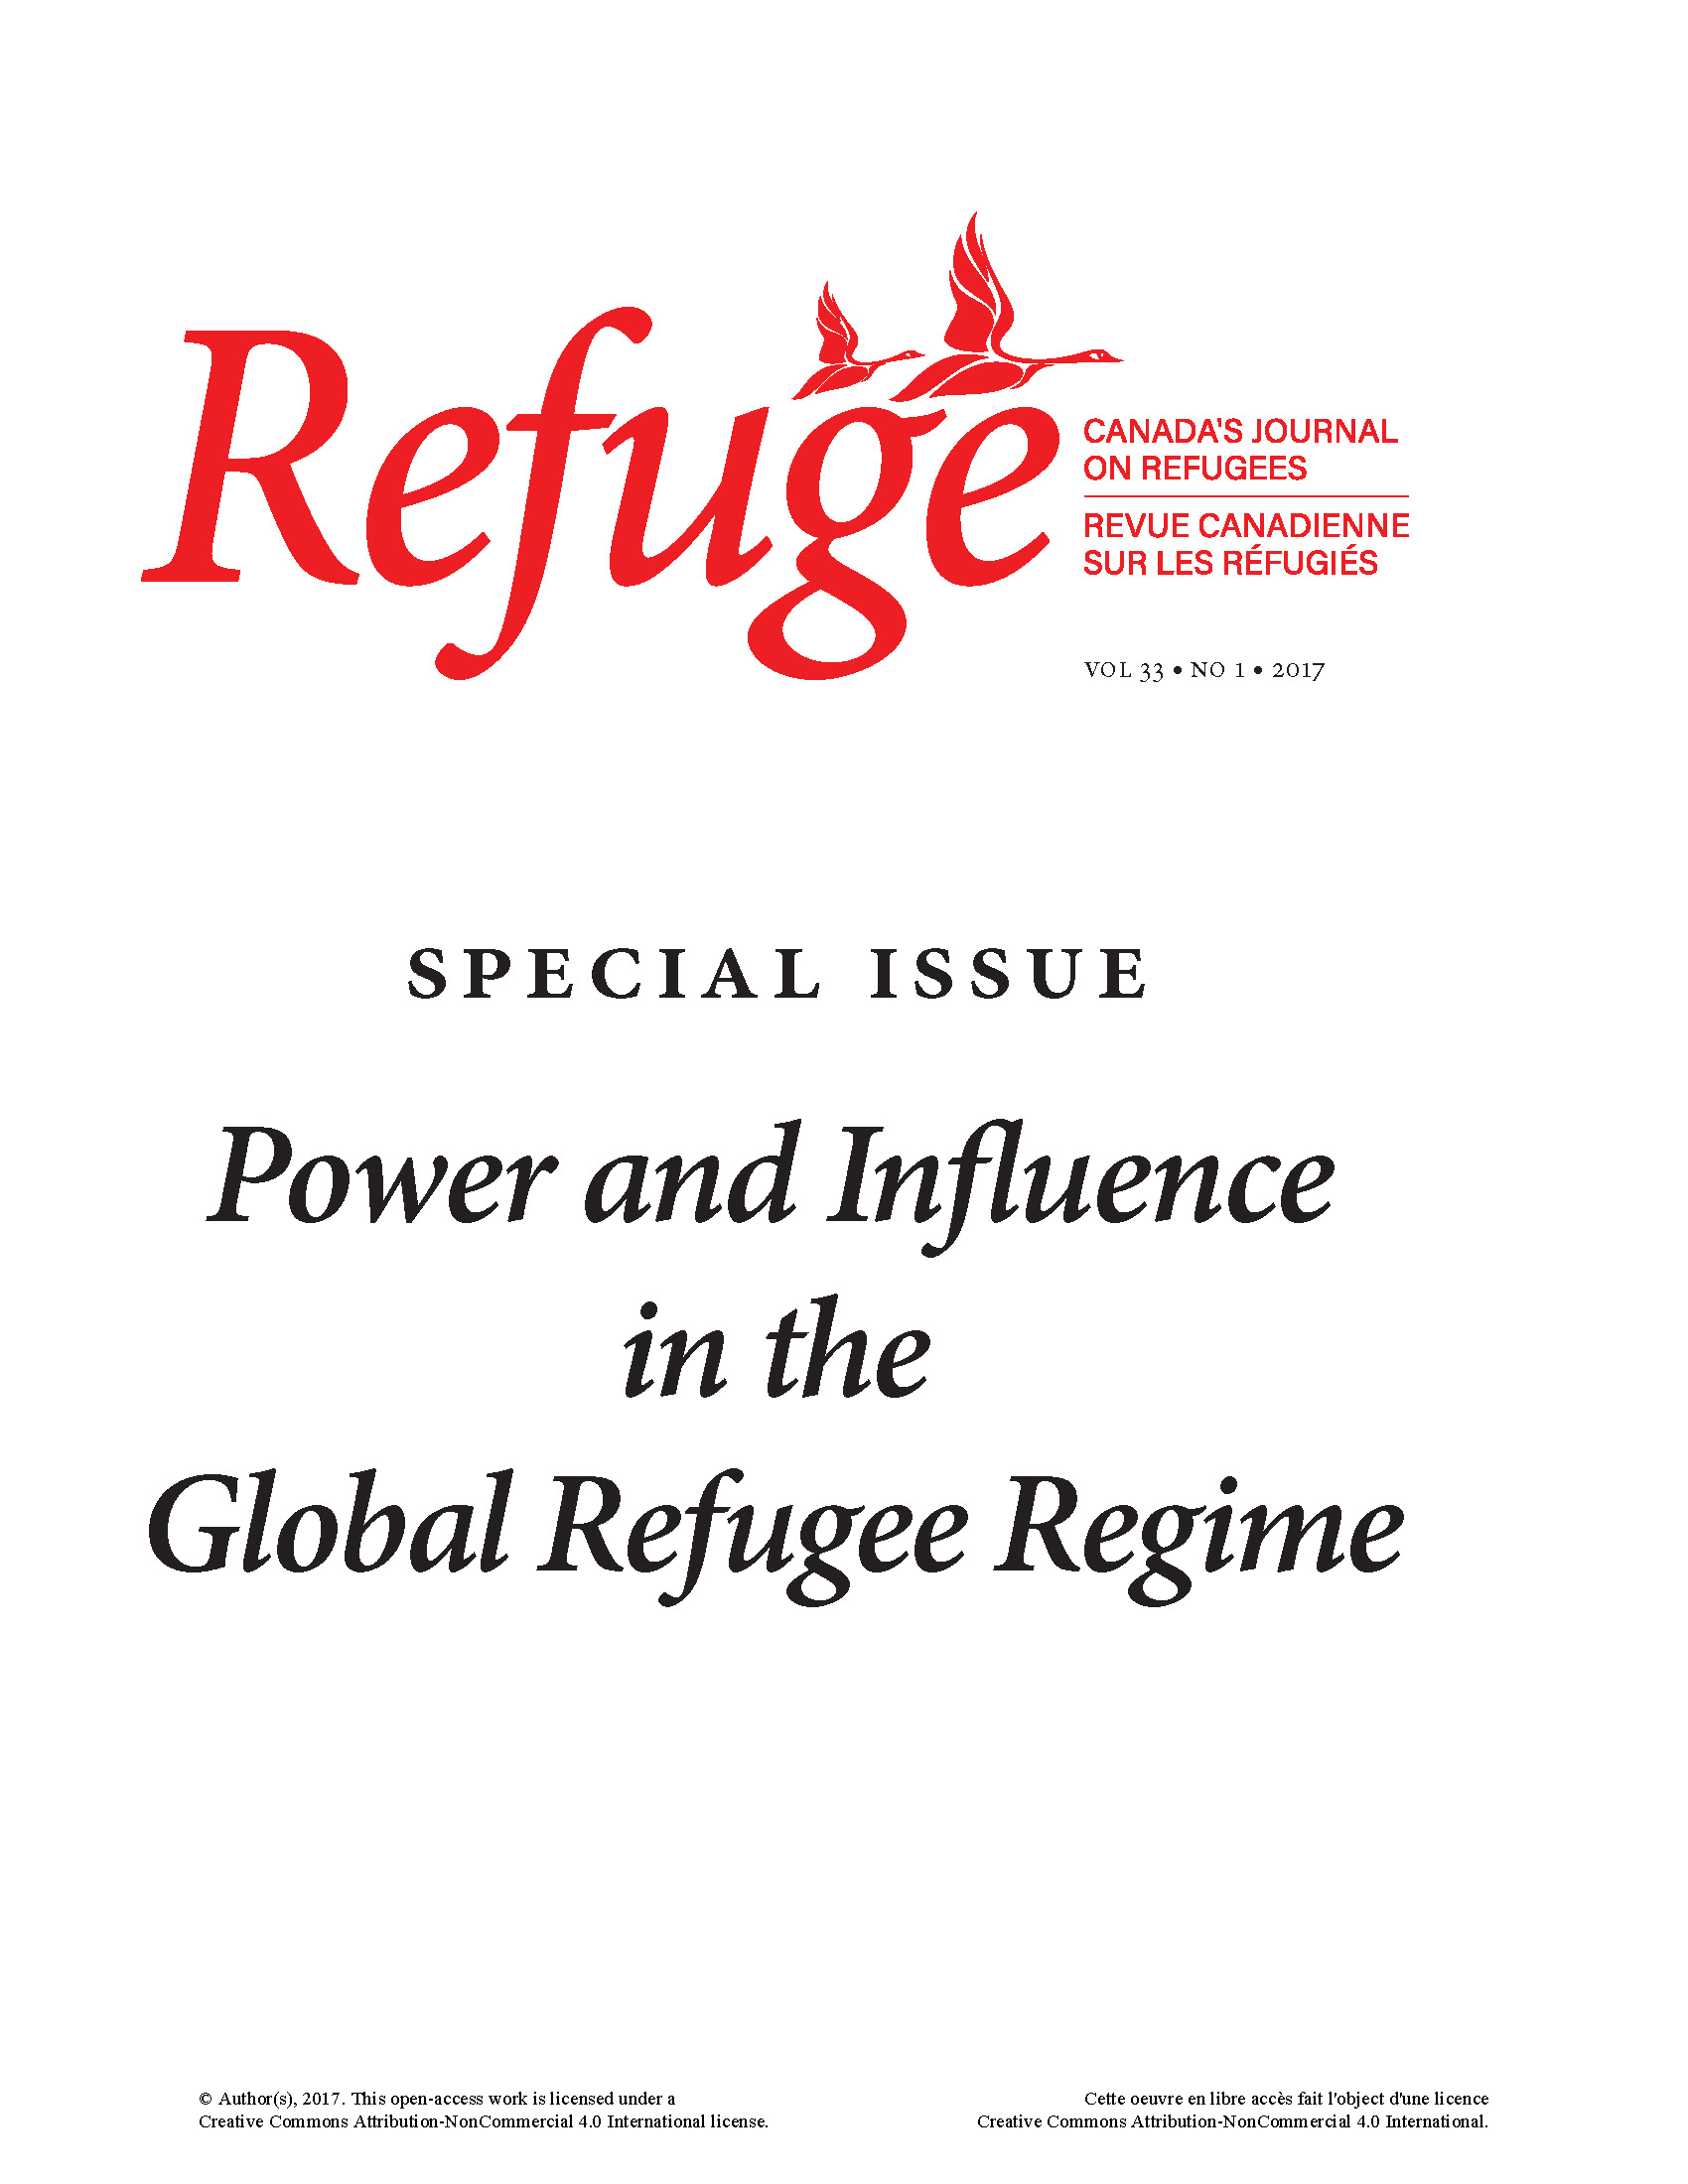 cover image of Refuge special issue on power and influence in the global refugee regime